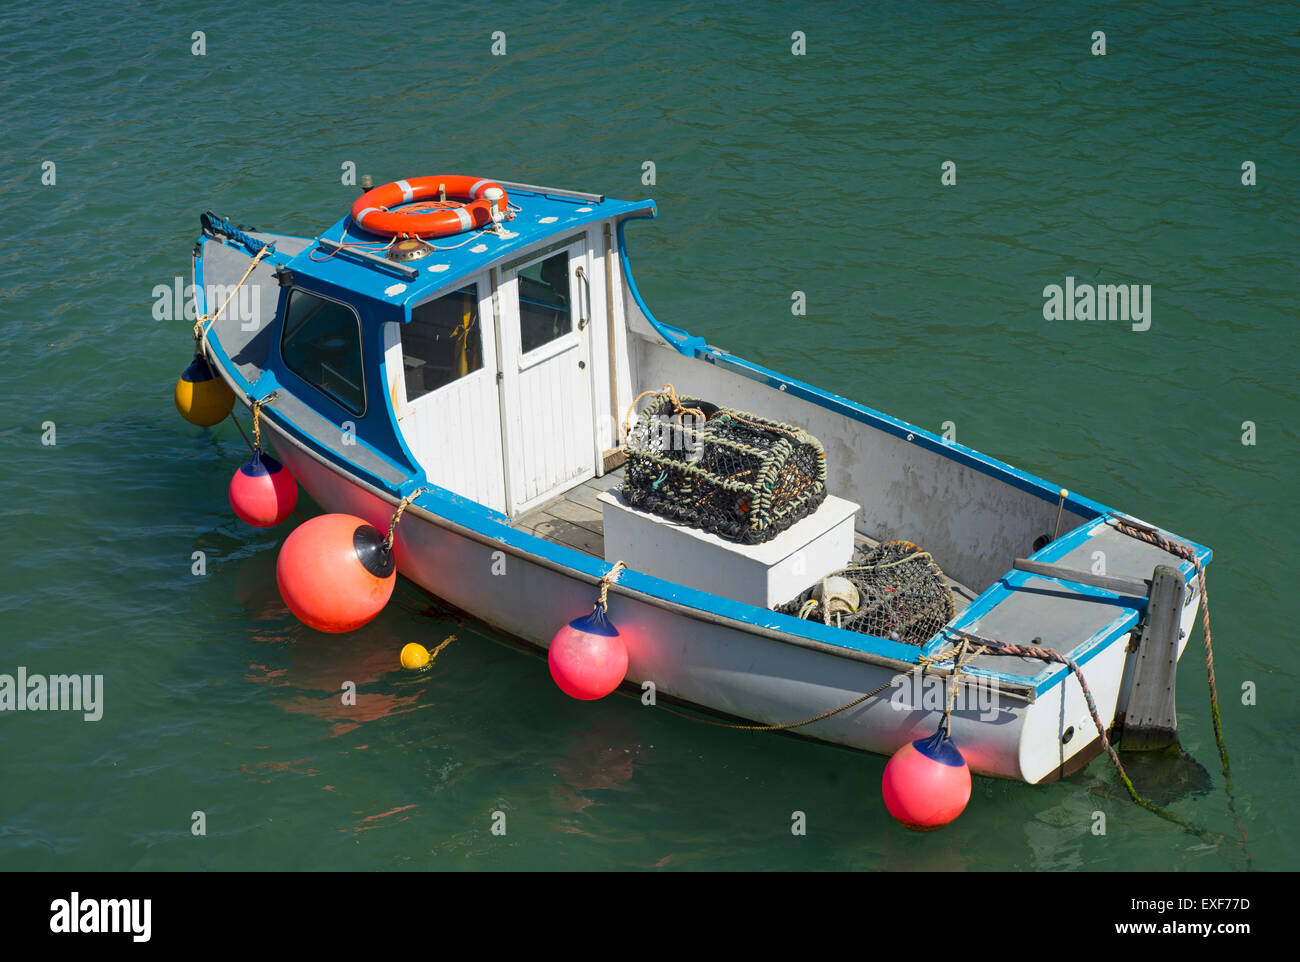 Fishing creel stock photos fishing creel stock images for Little fishing boats